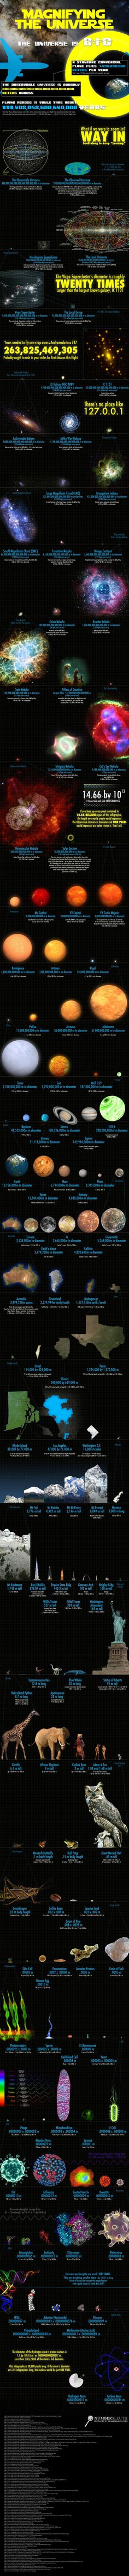 Magnifying the Universe - Sizes of Structures